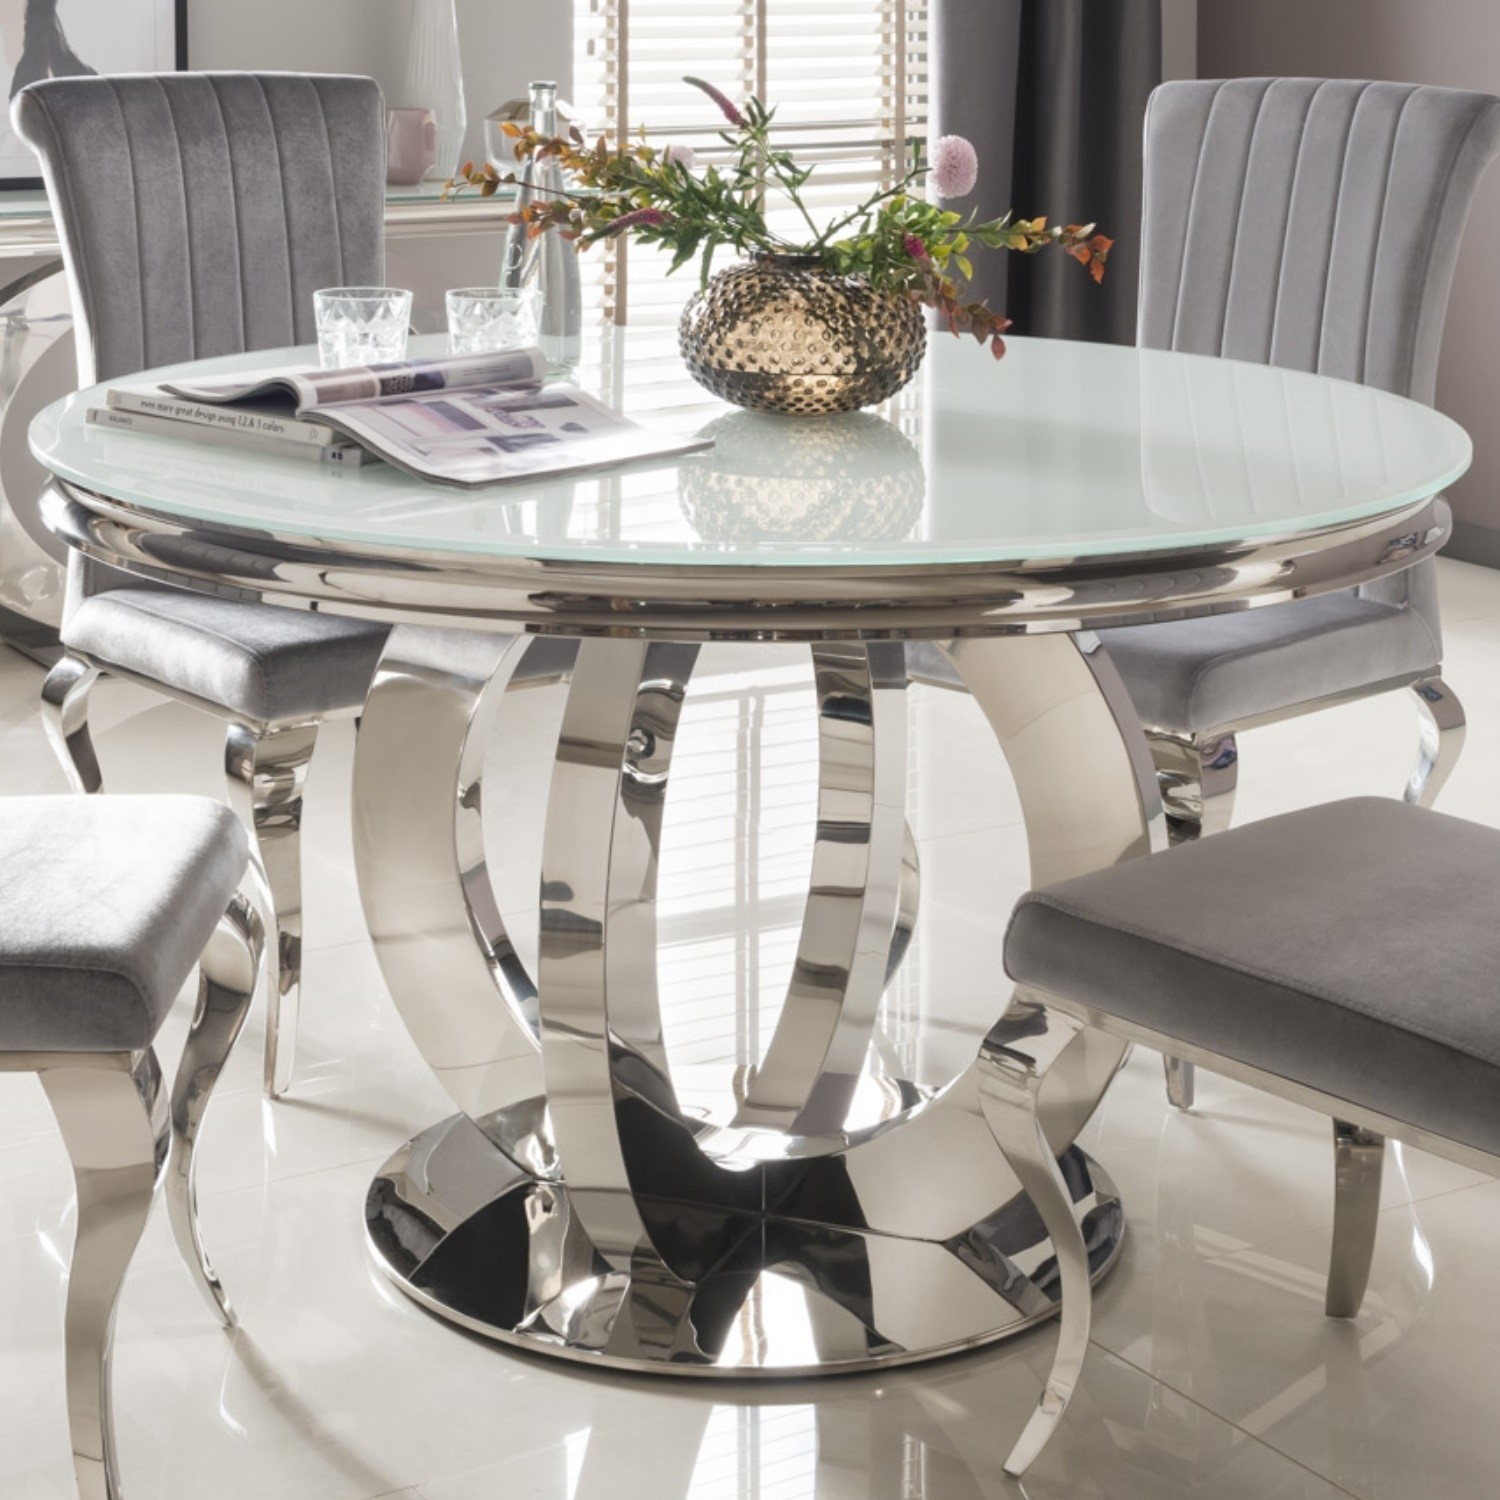 Picture of: Orion Mirrored Round Dining Table With White Glass Top Vida Living Furniture123